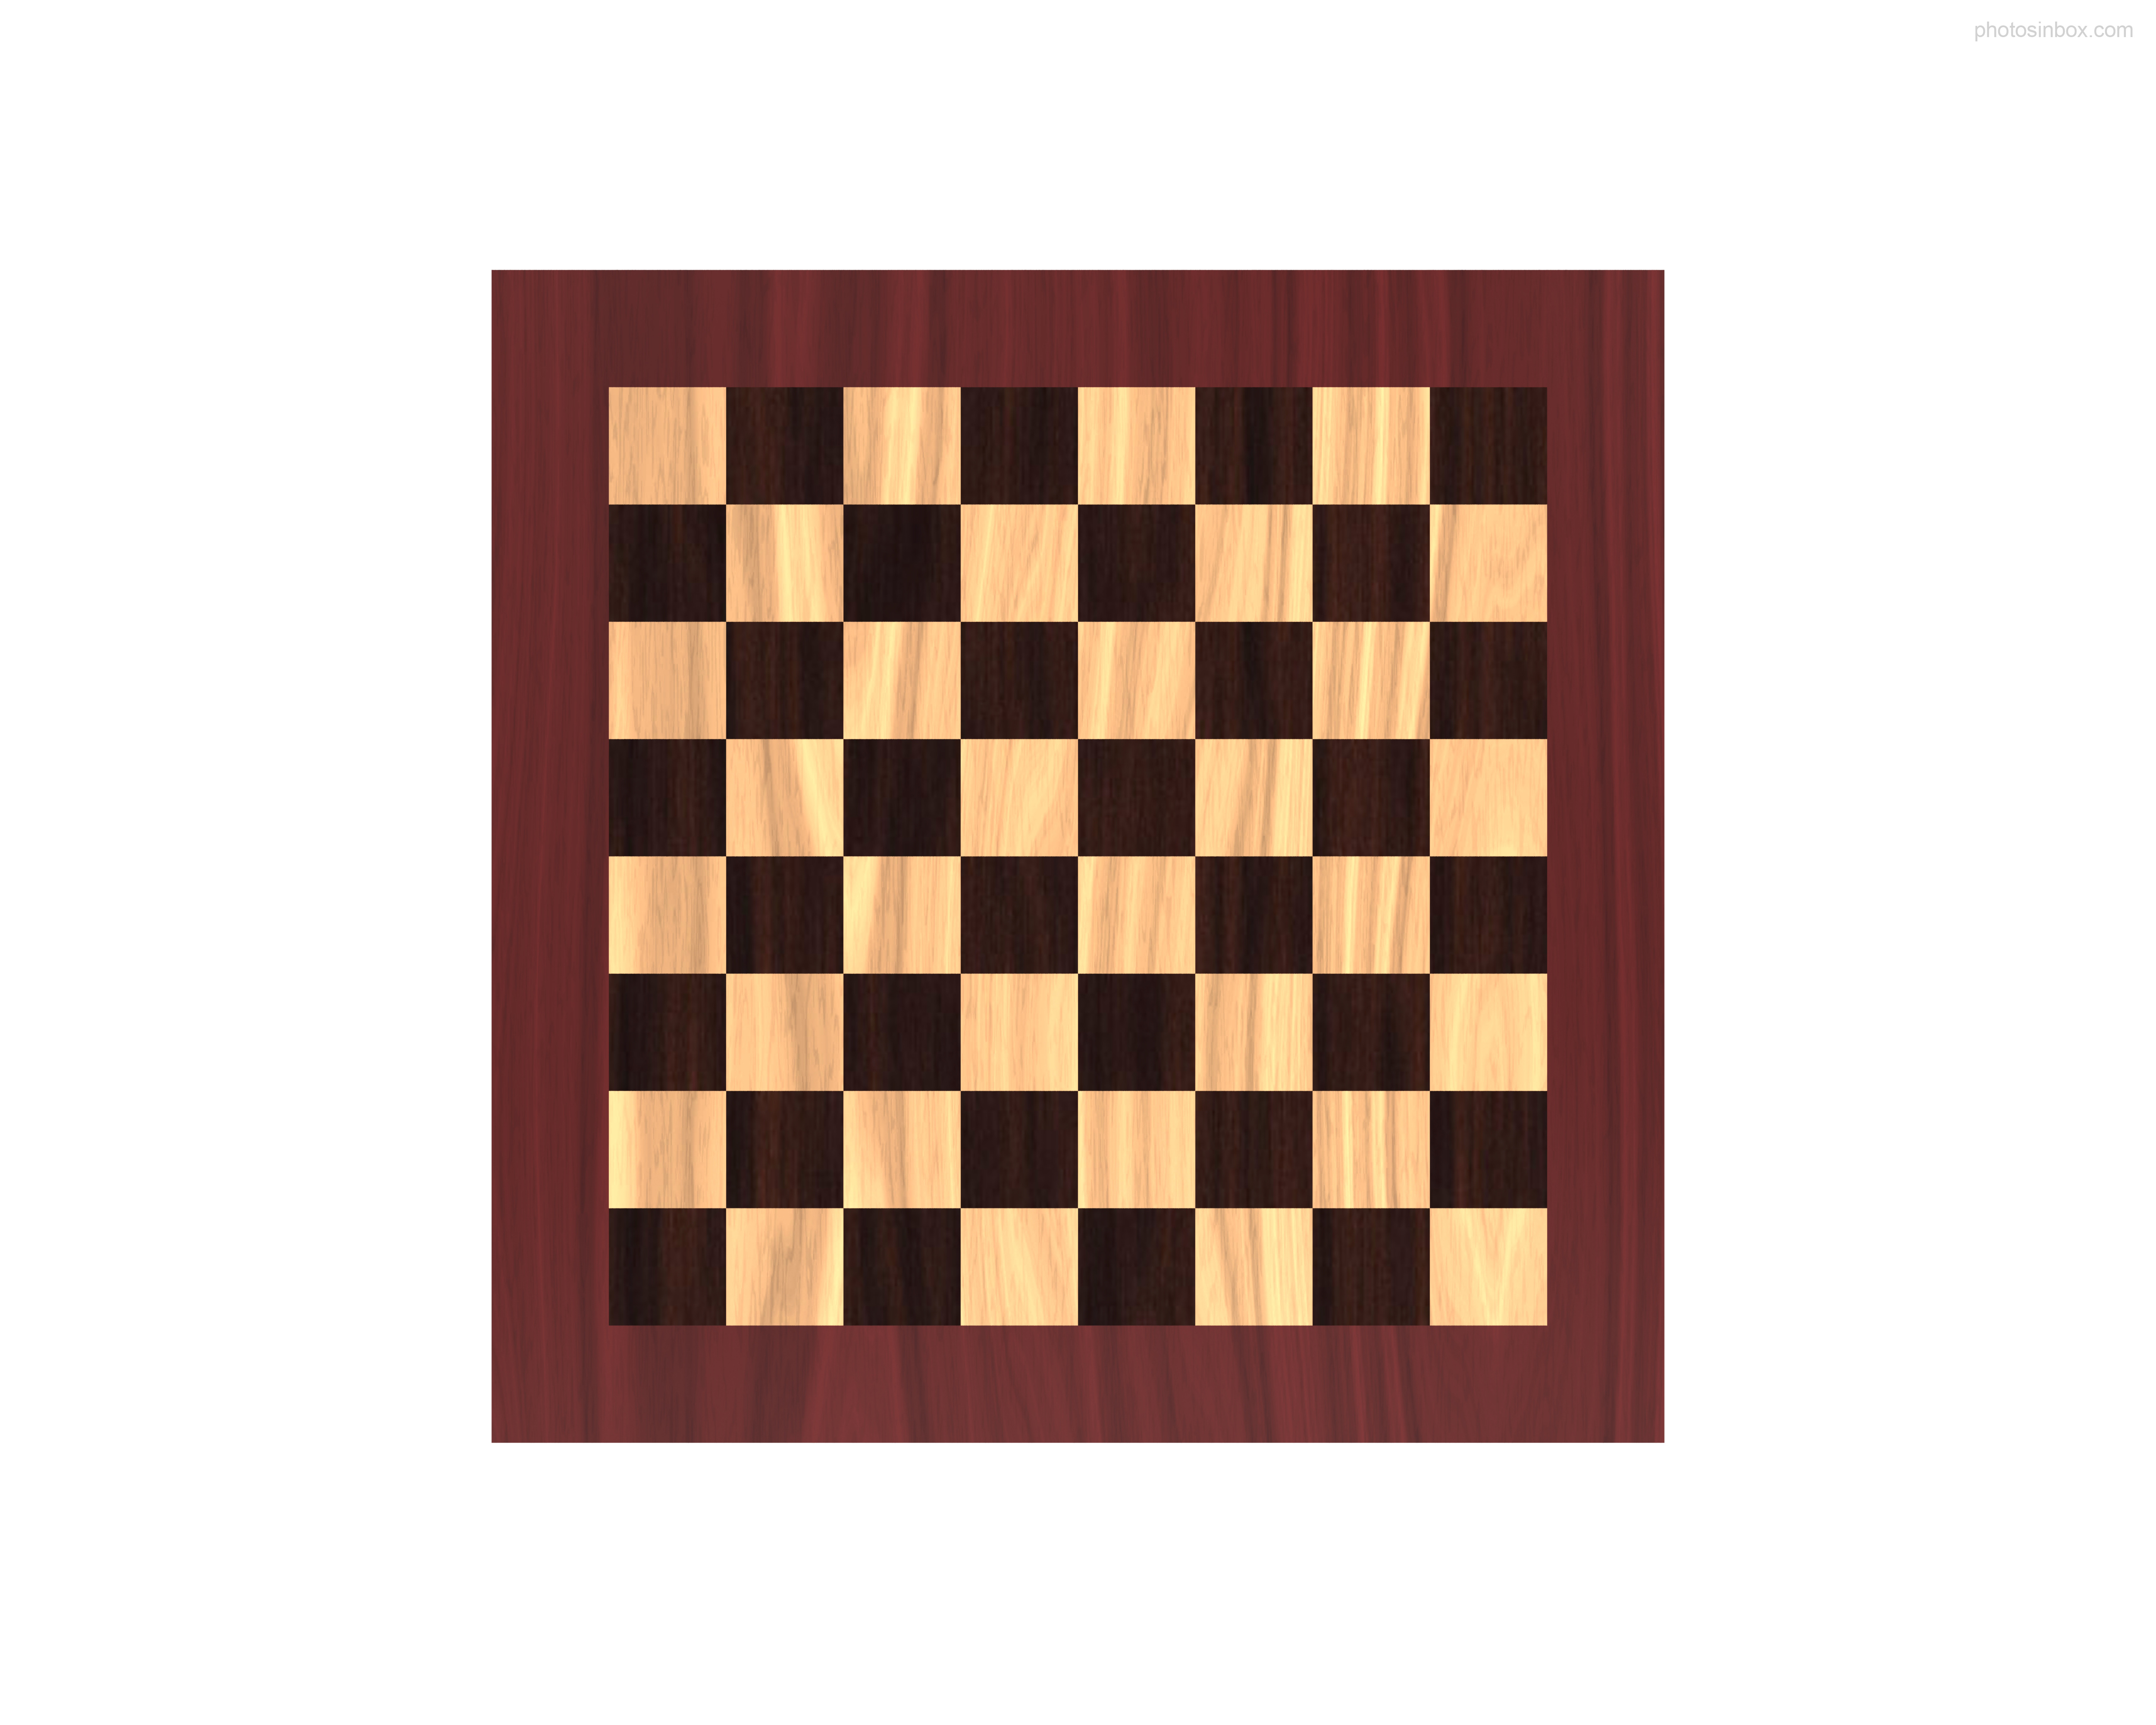 Chessboard Display Largejpg Clipart.